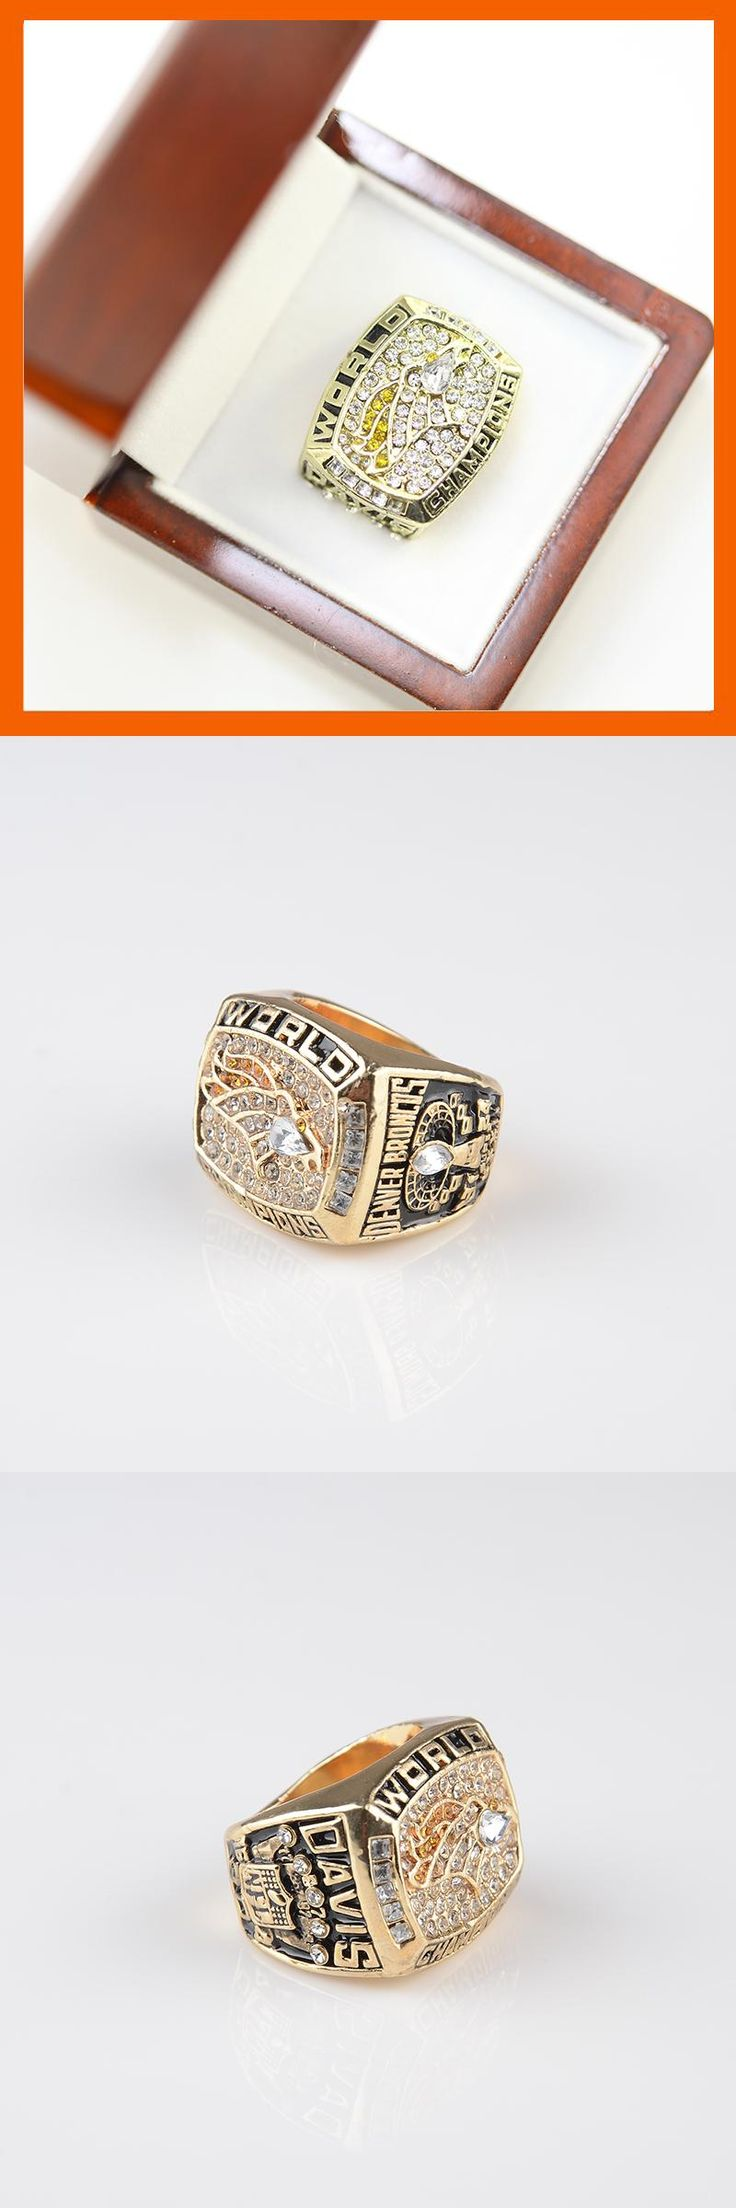 [Visit to Buy] 1997 DENVER BRONCOS SUPER BOWL XXXII WORLD CHAMPIONSHIP RING US SIZE  8 9 10 11 12 13 14 AVAILABLE #Advertisement